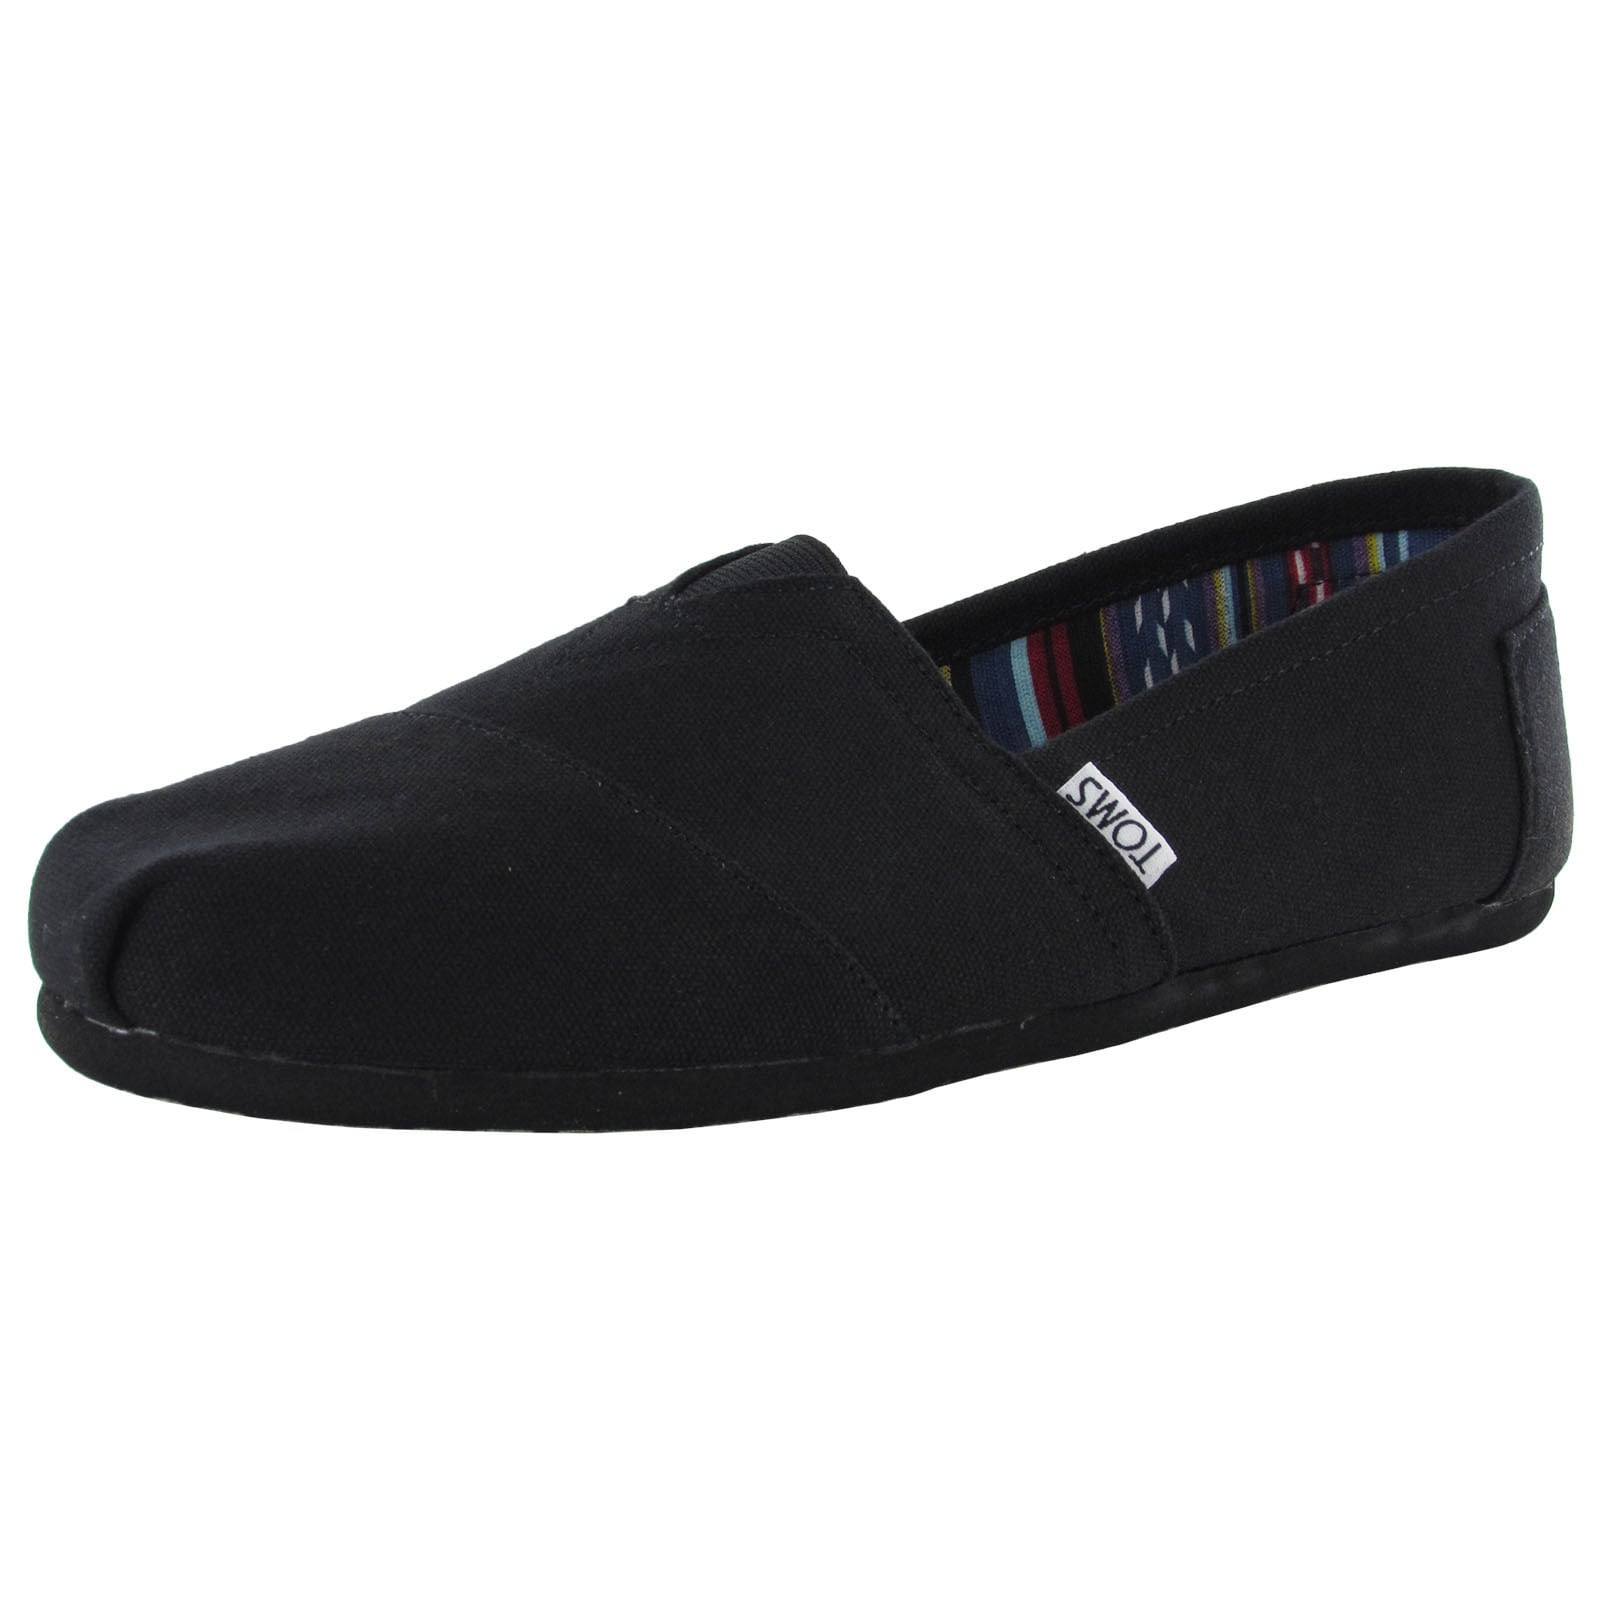 4f8a114fd16 Shop Toms Men's 'Classic Canvas' Slip On Casual Loafer Shoes - Free  Shipping Today - Overstock - 11467813